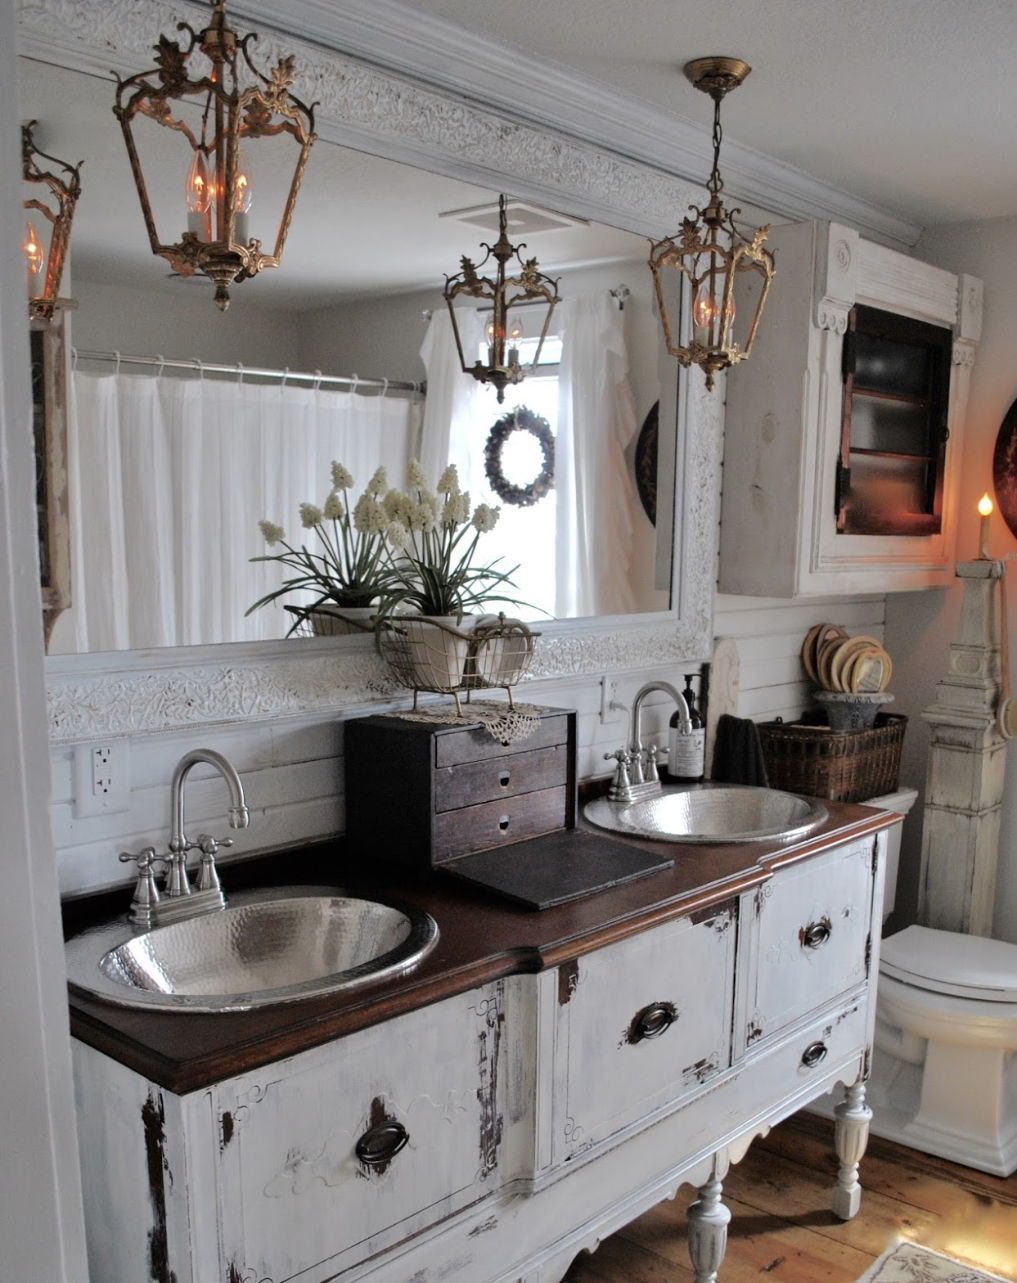 Love this antique cabinet turned bathroom vanity #bathroom #vintagebathroom #farmhousebathroom #vintagedecor #neutraldecor